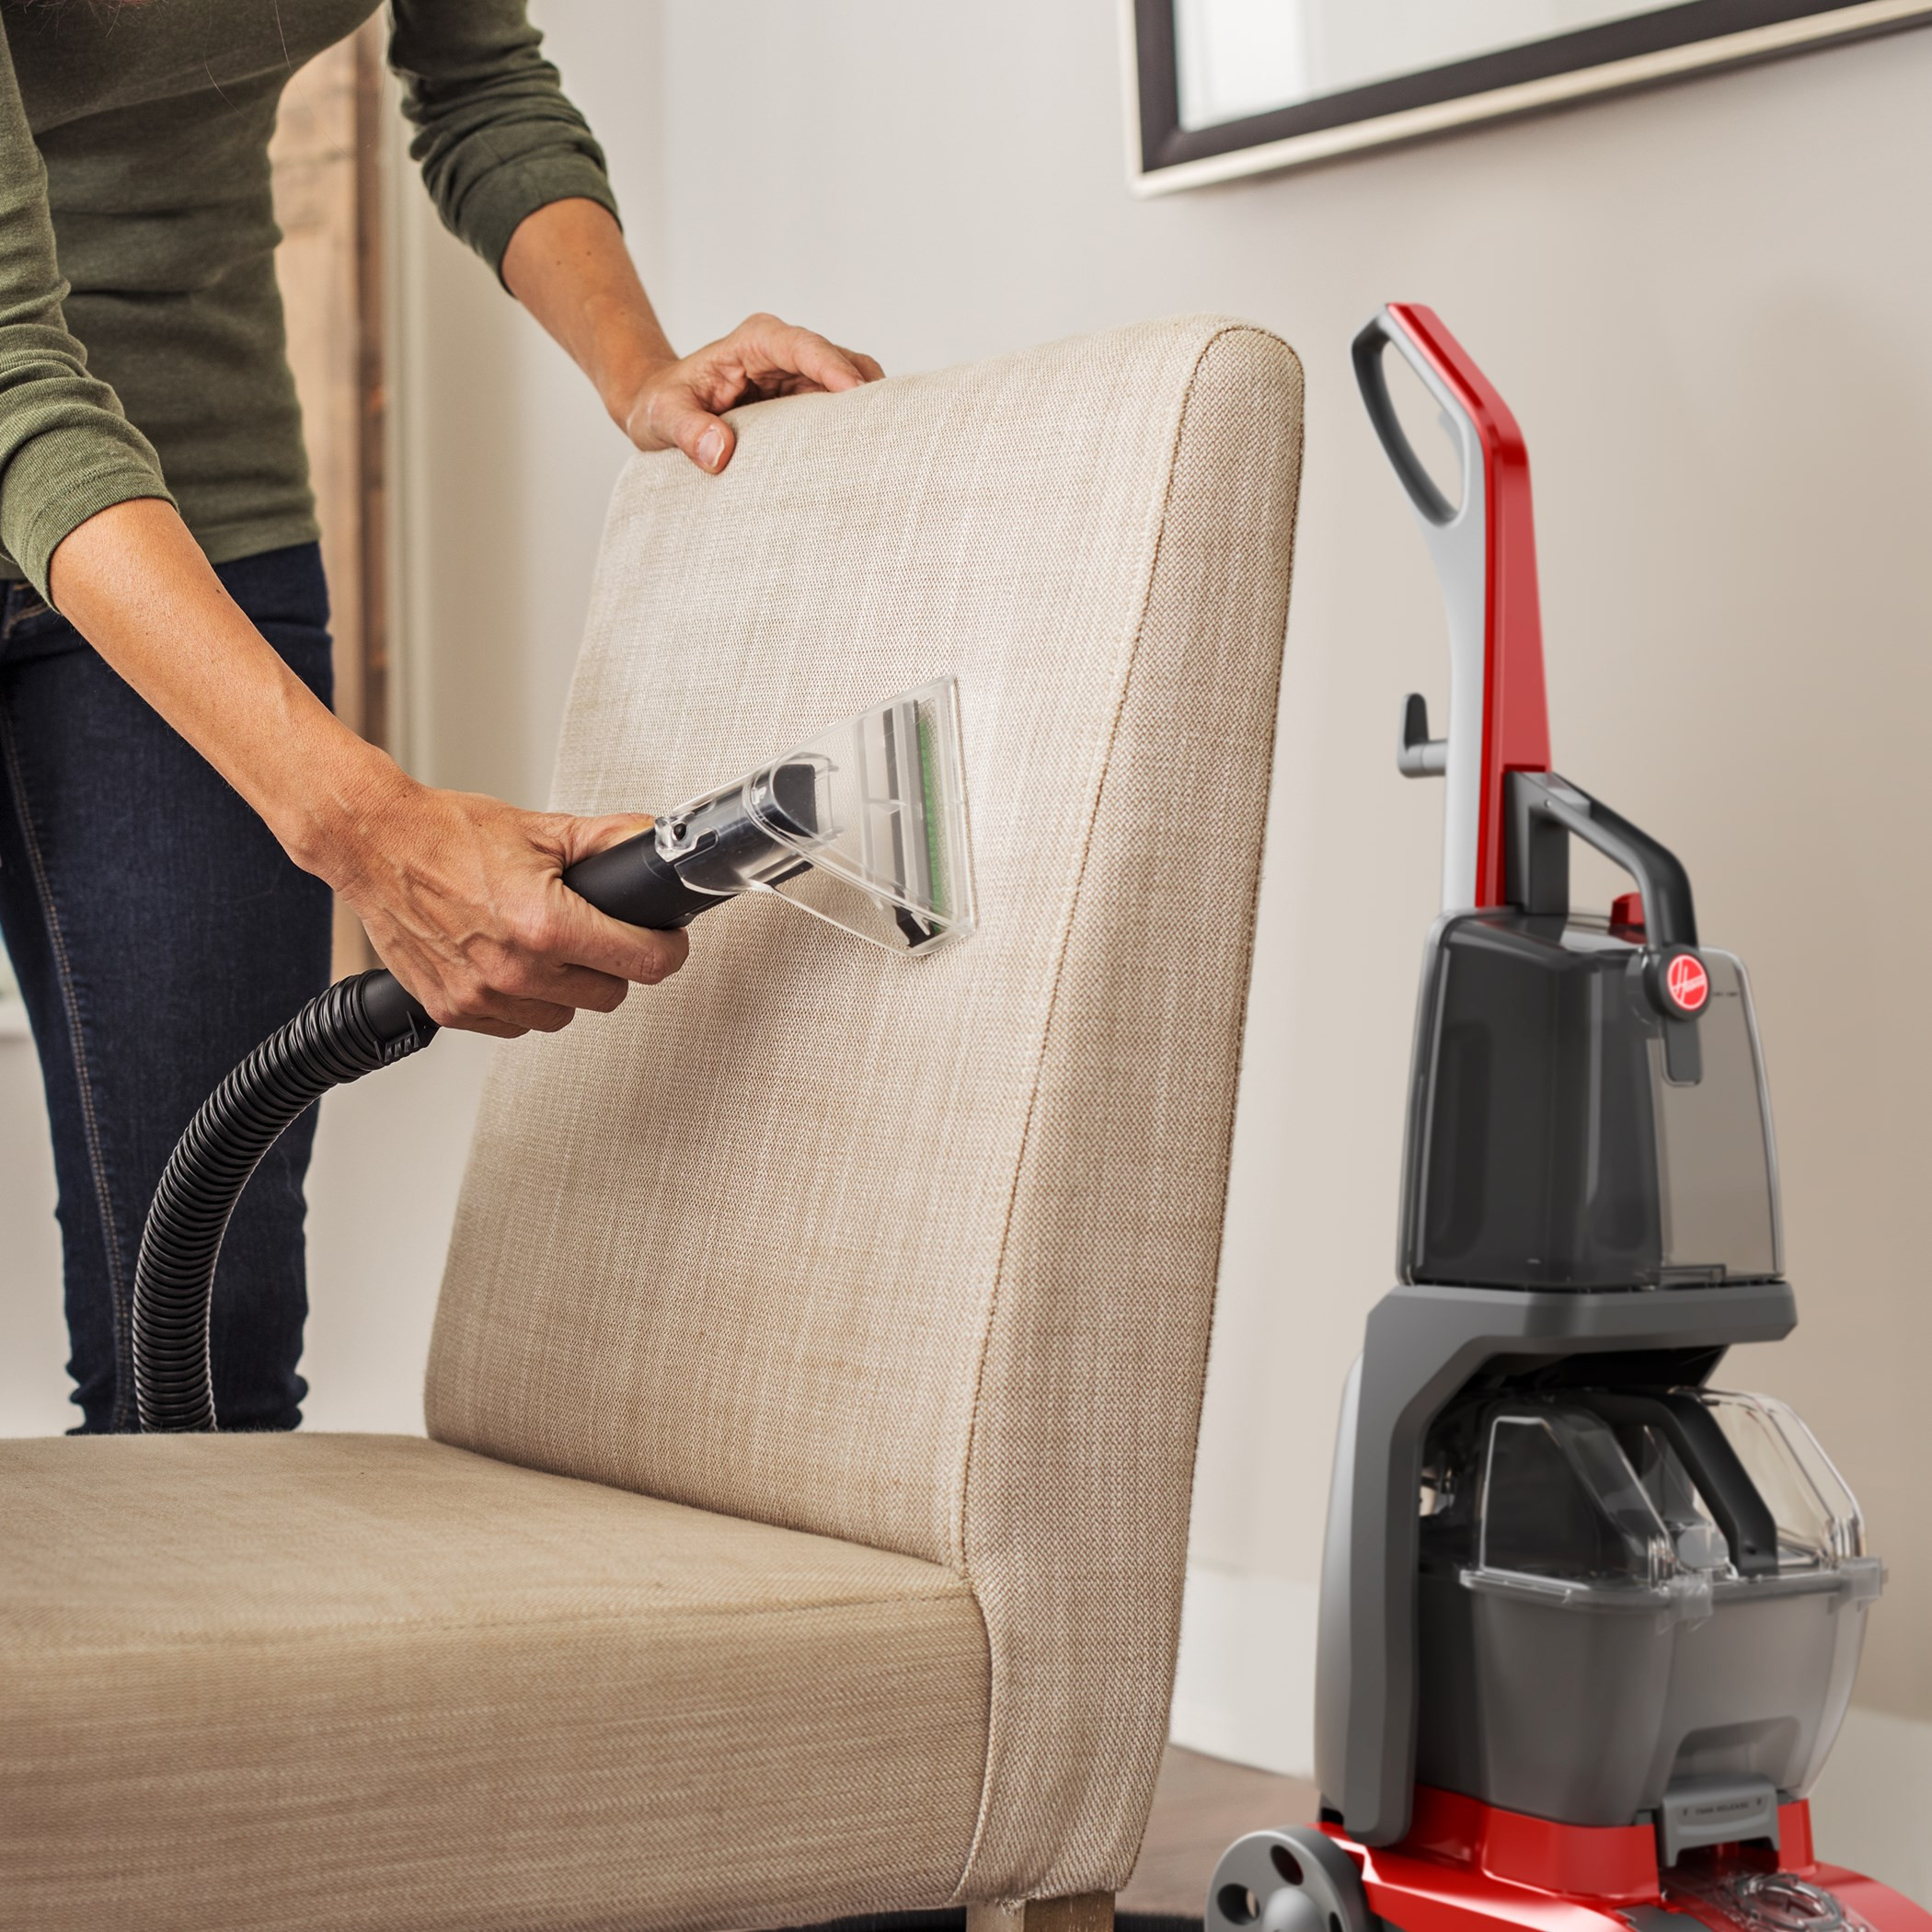 hardwood flooring lumberton nc of hoover power scrub carpet cleaner w spinscrub technology fh50135 with hoover power scrub carpet cleaner w spinscrub technology fh50135 walmart com